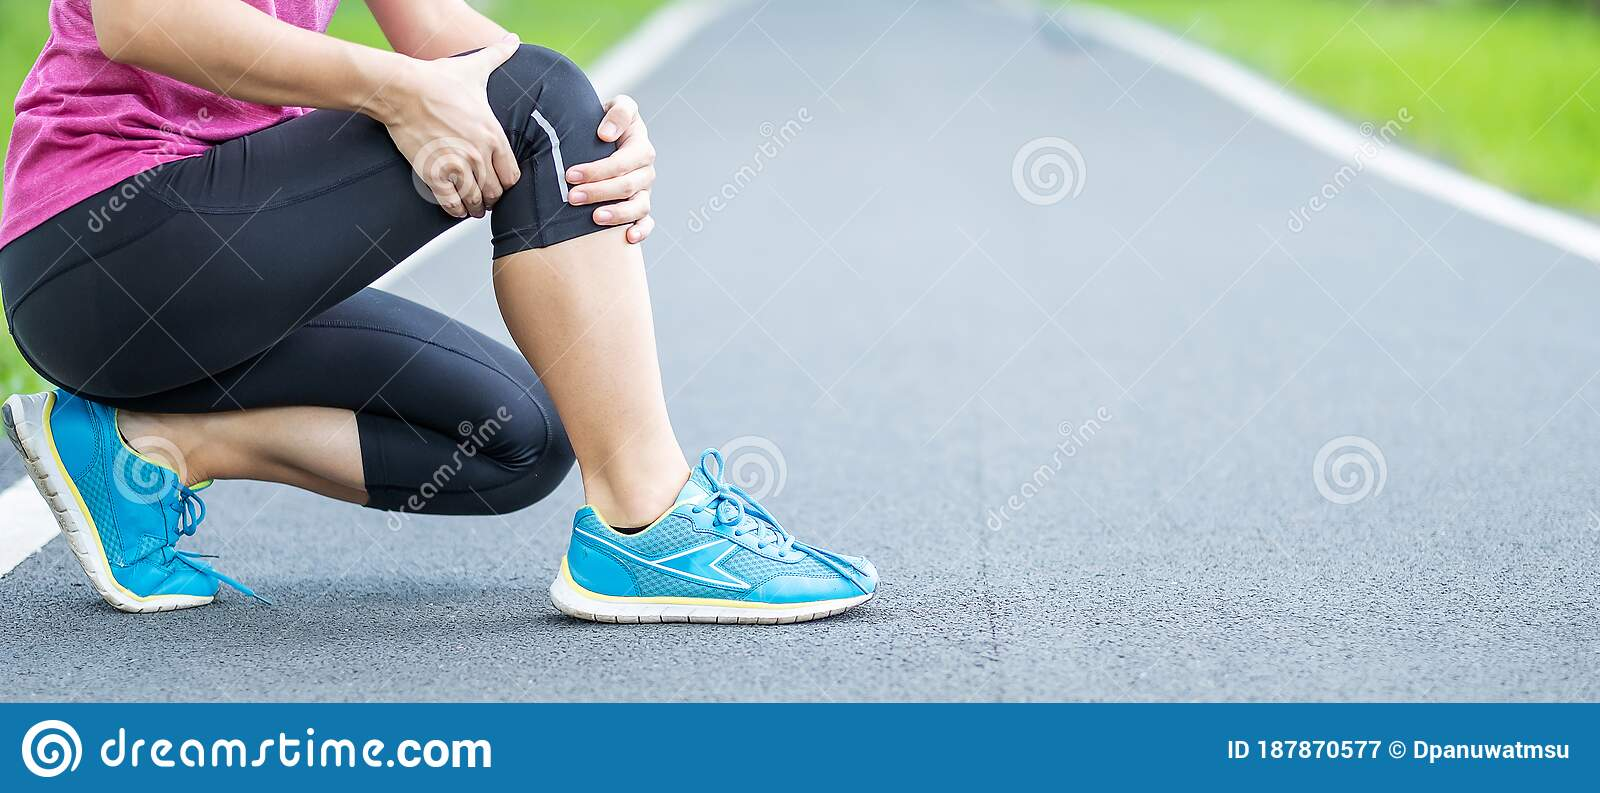 Young Adult Female With Muscle Pain During Running. Runner Have Ache Due To  Runners Knee Or Patellofemoral Pain Syndrome, Stock Image - Image of  patellofemoral, park: 187870577